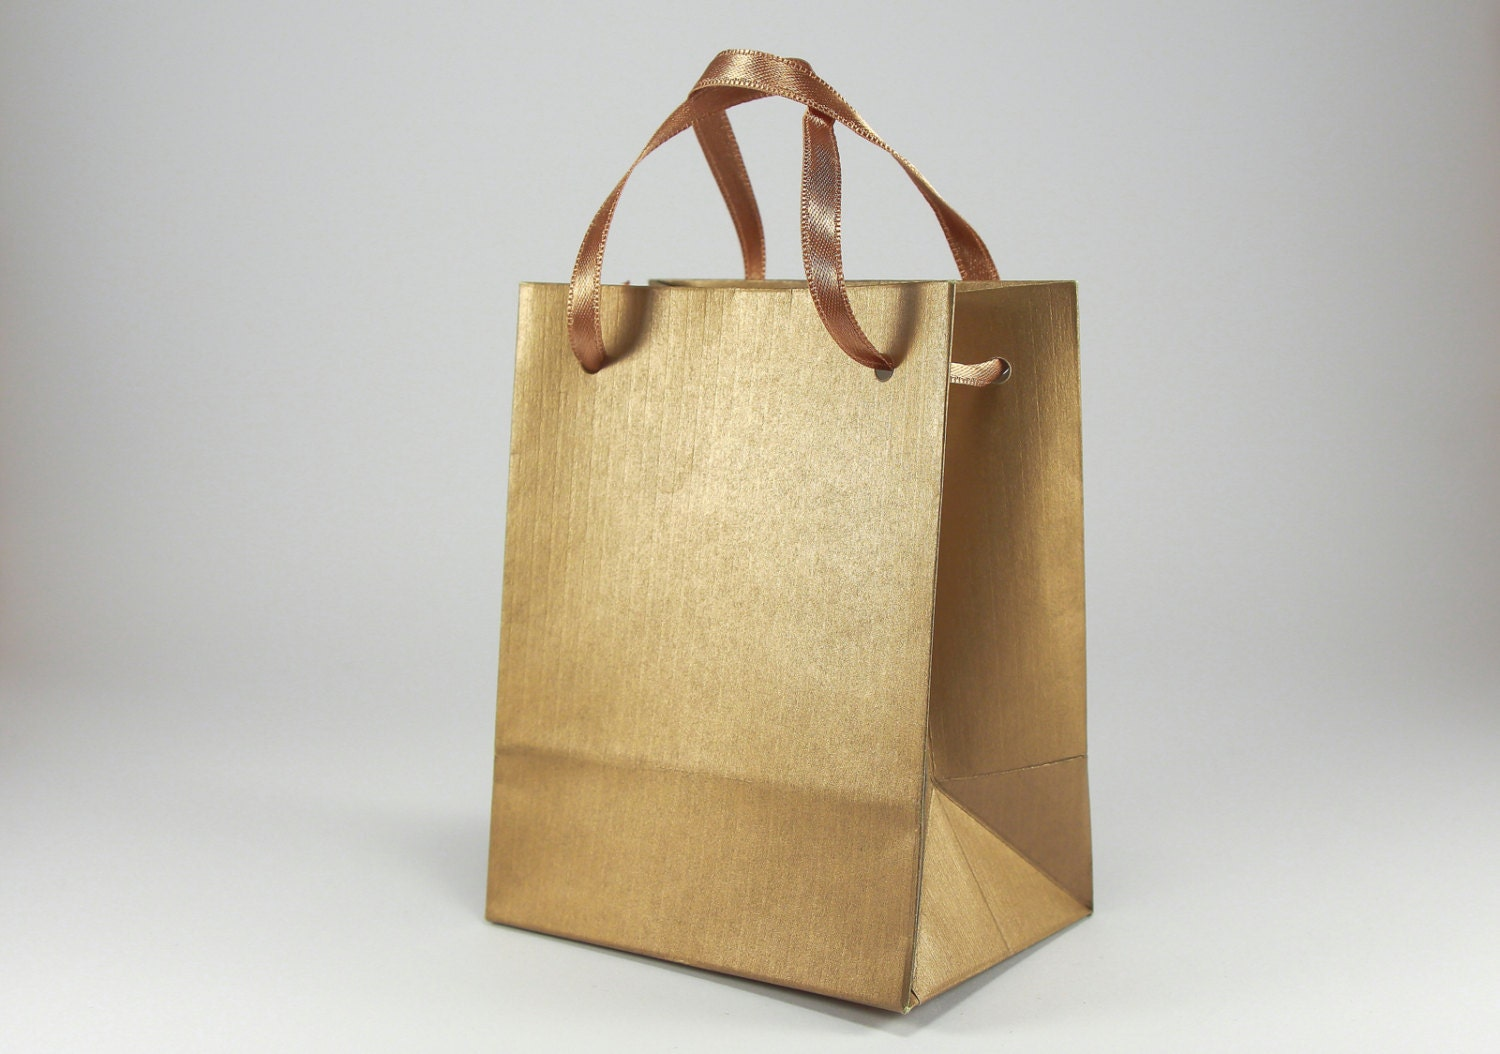 Gold Wedding Gift Bags : 50 Extra Small Gift Bags Antique Gold Paper Bags with Satin